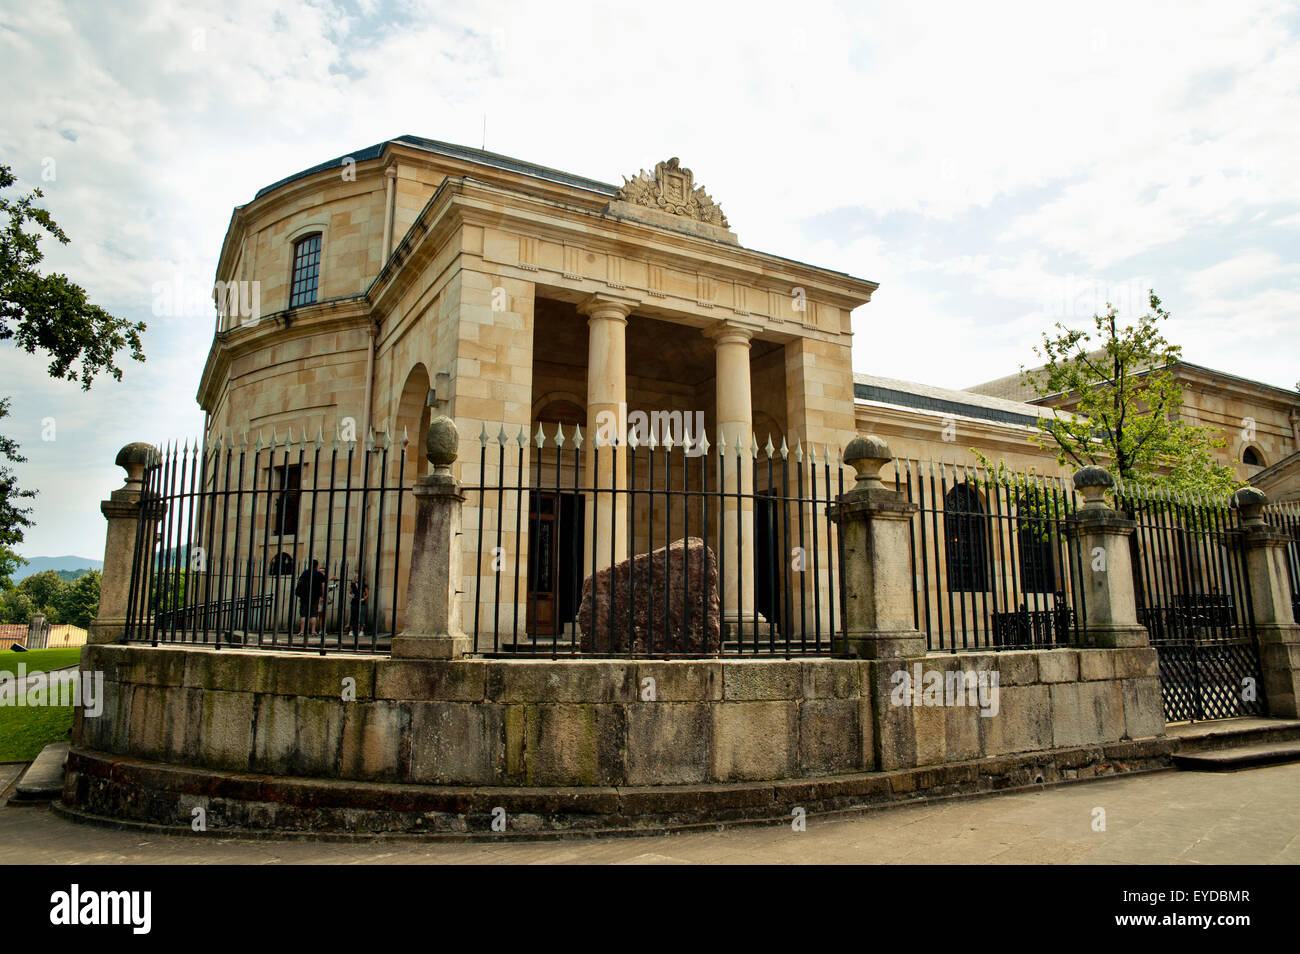 Casa De Juntas, House Of The Historical Archive Of The Basque Country, Gernika-Lumo, Basque Country, Spain - Stock Image